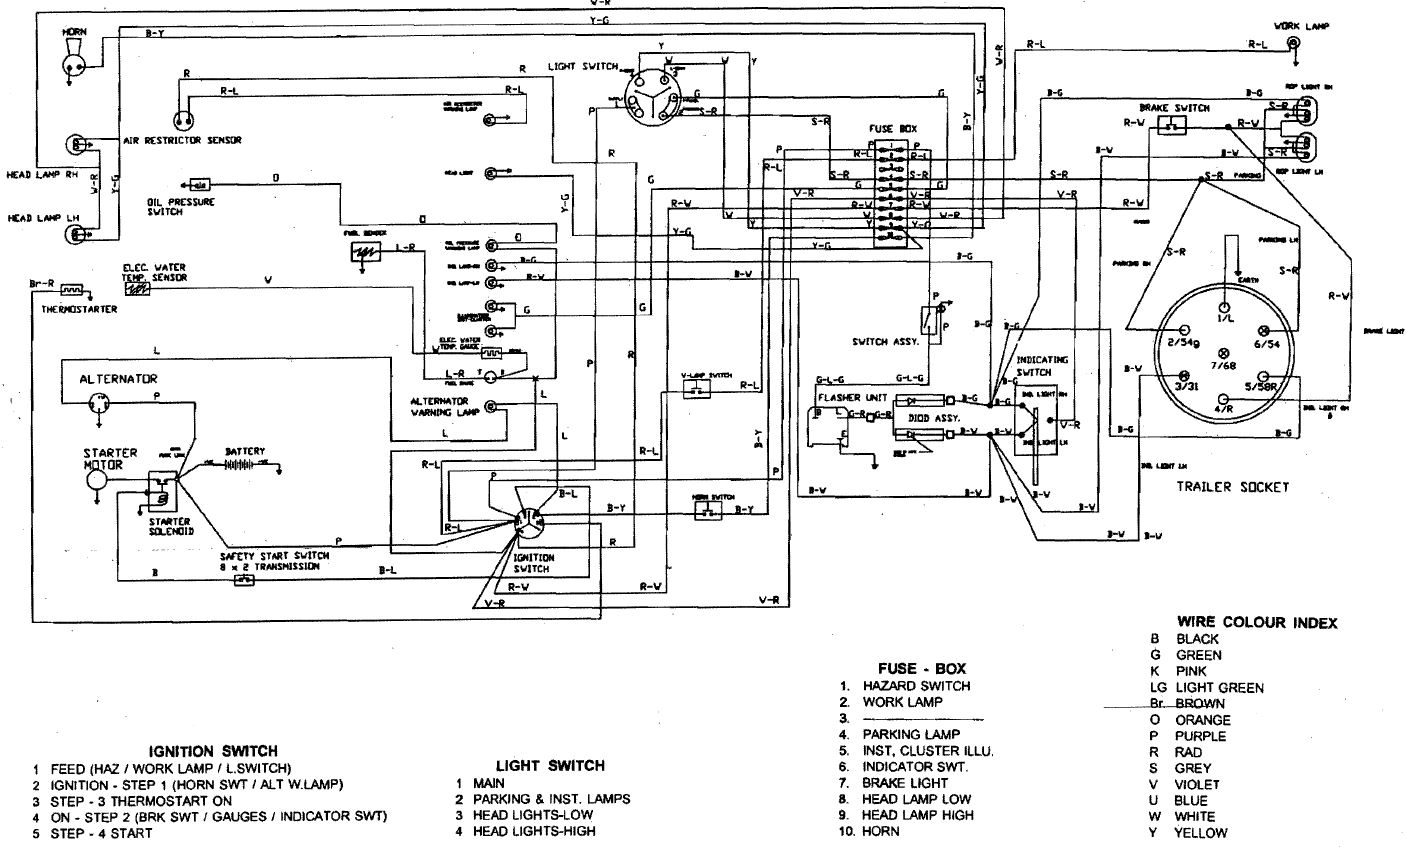 20158463319_b82d524c3d_o ignition switch wiring diagram PTO Switch Wiring Diagram for Massey Furgeson at readyjetset.co